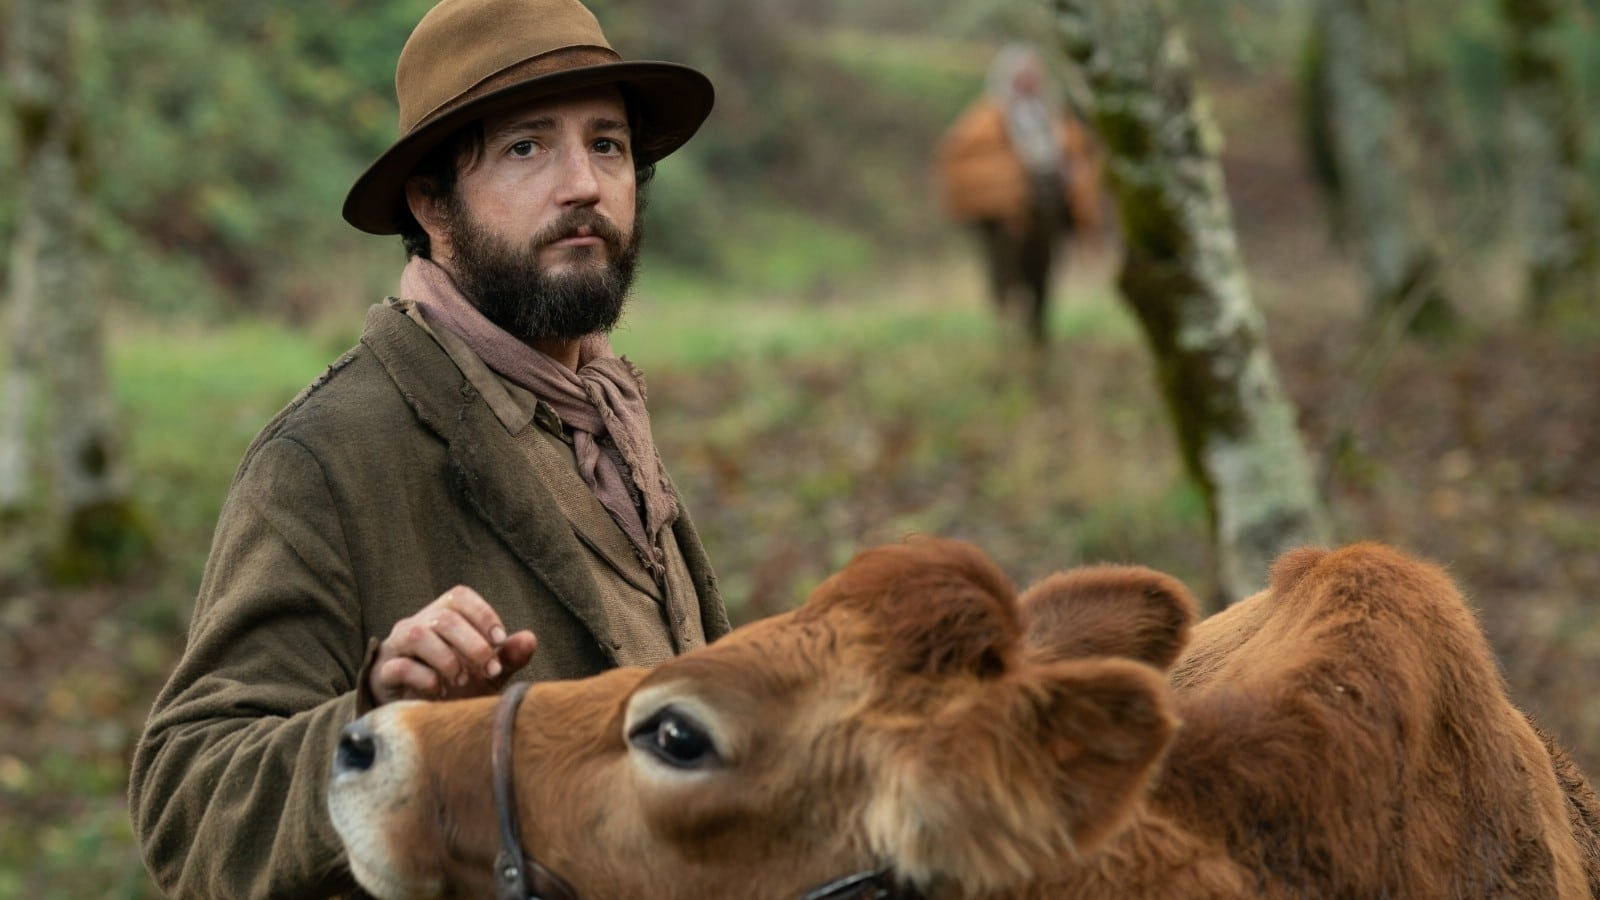 A man stands, looking at the camera, holding a cow. A still from the film First Cow.